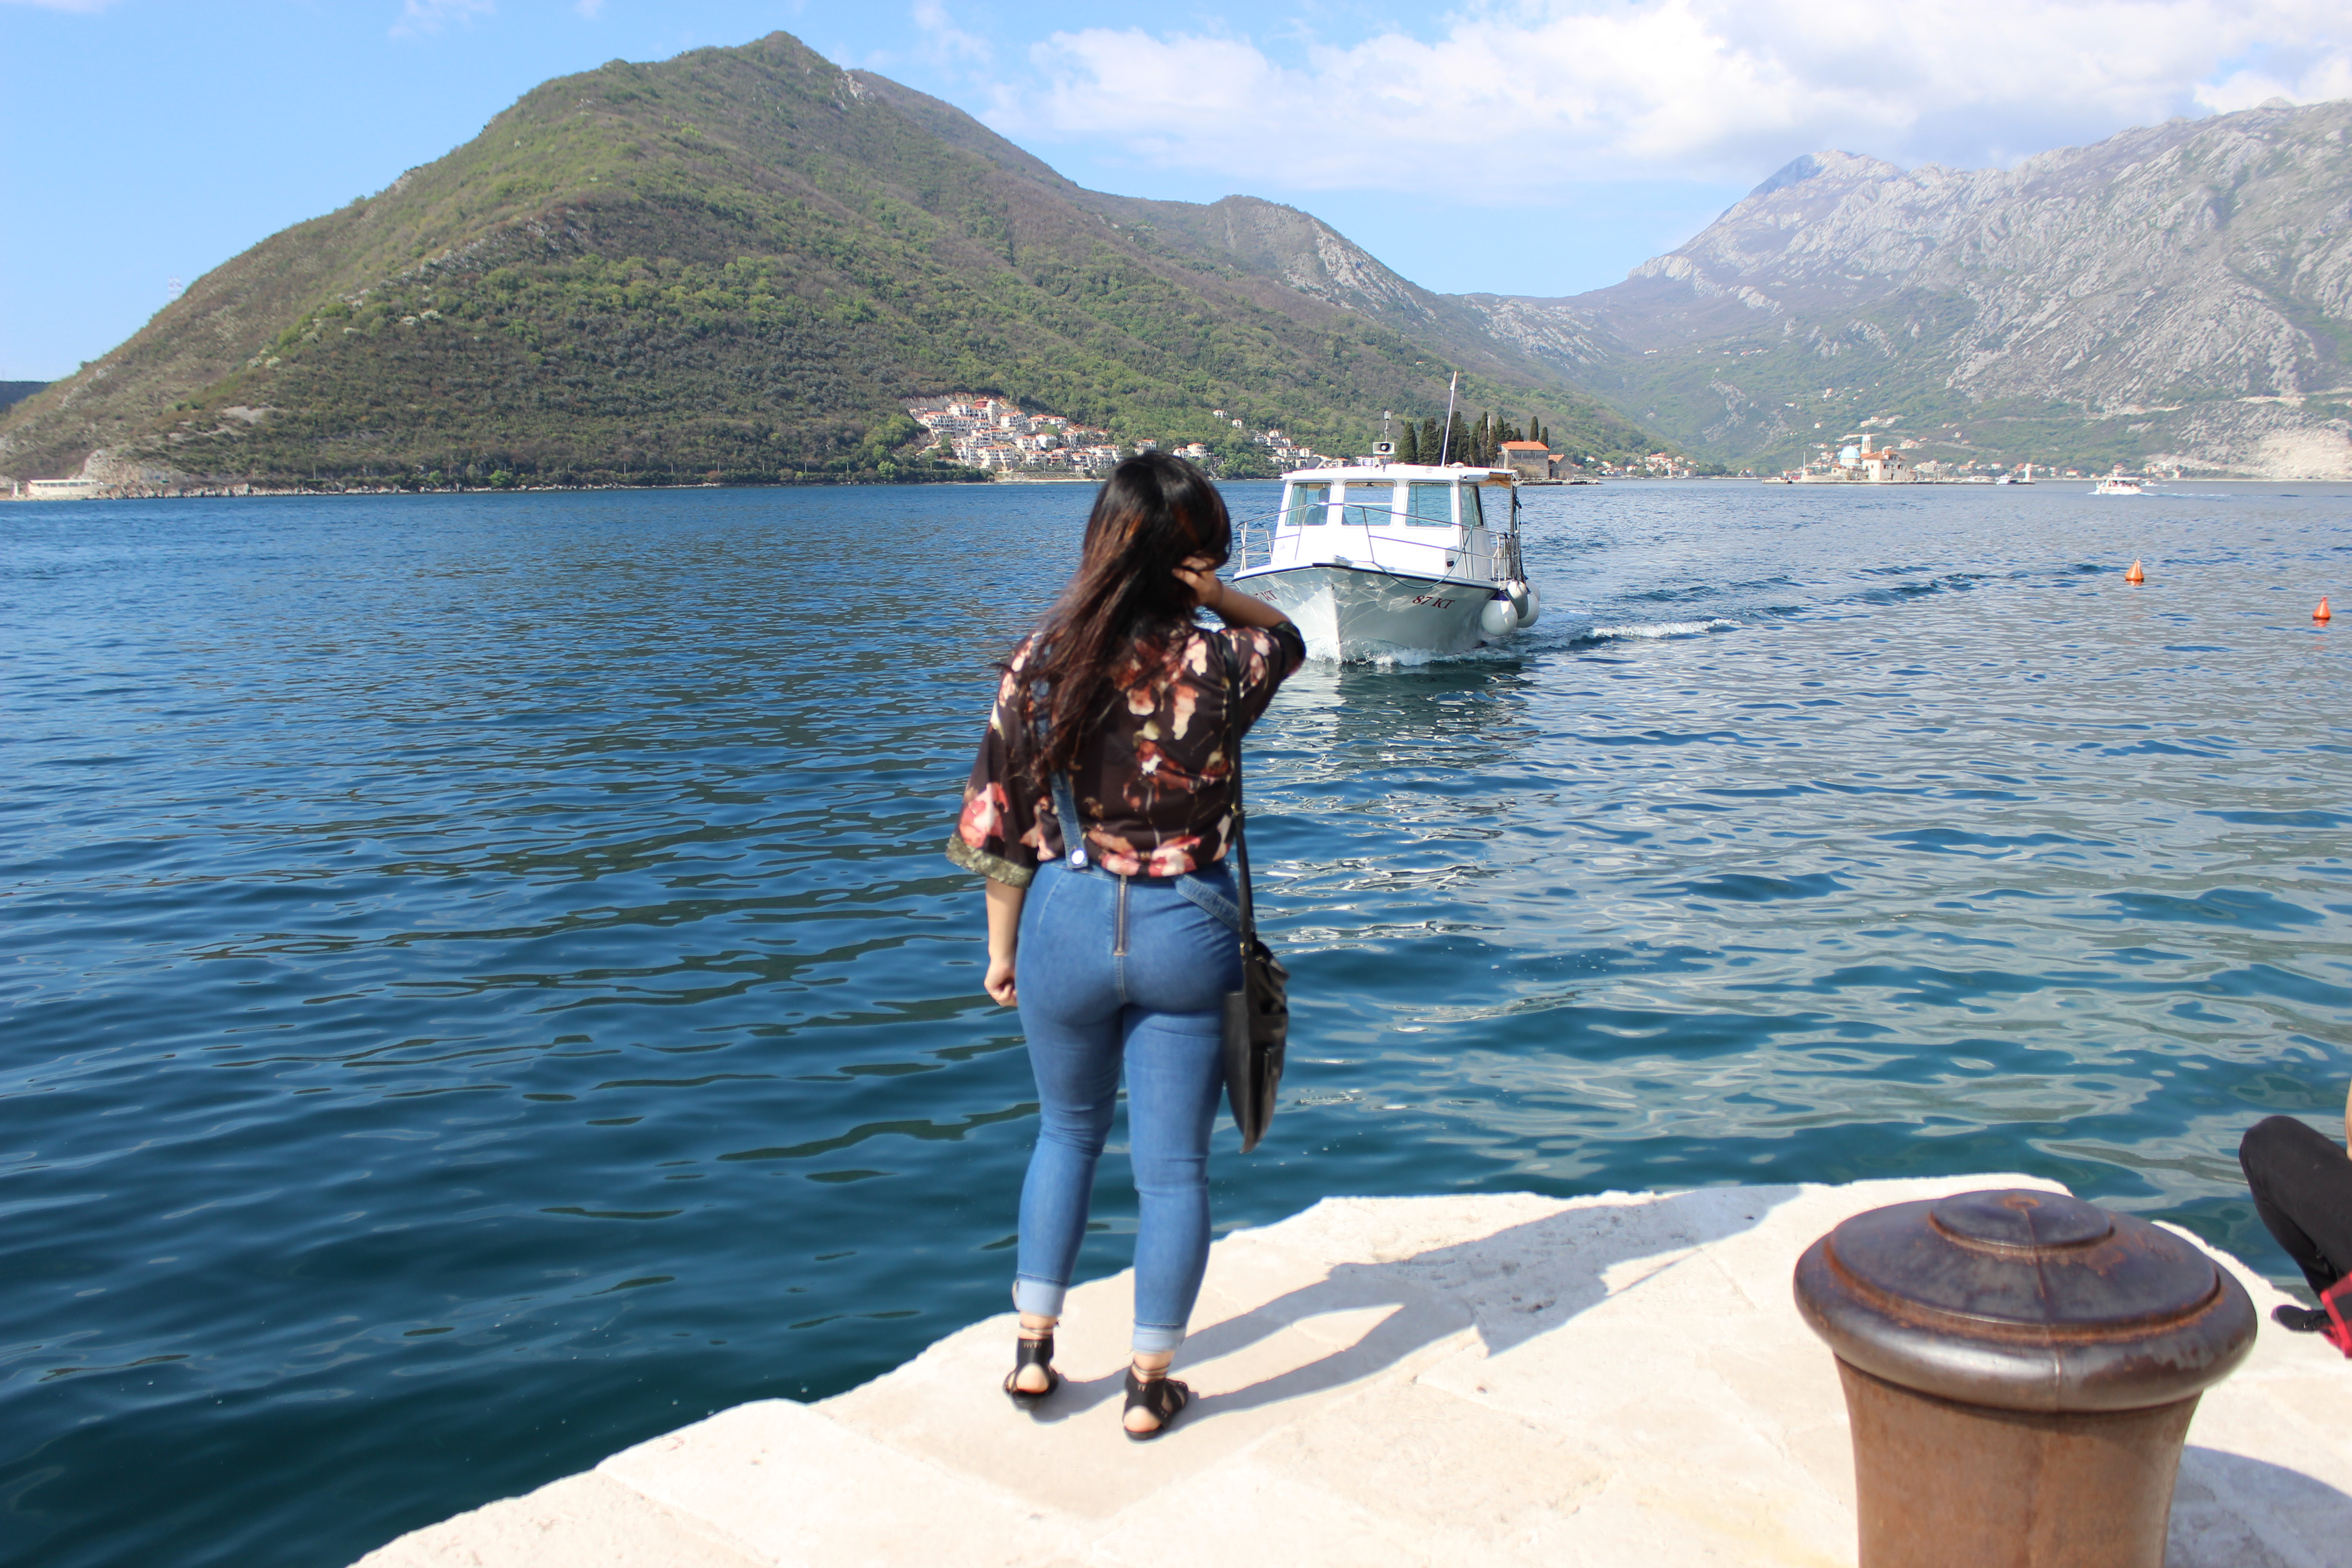 Overalls for a spring look in Montenegro http://www.wheremyheartwanders.com